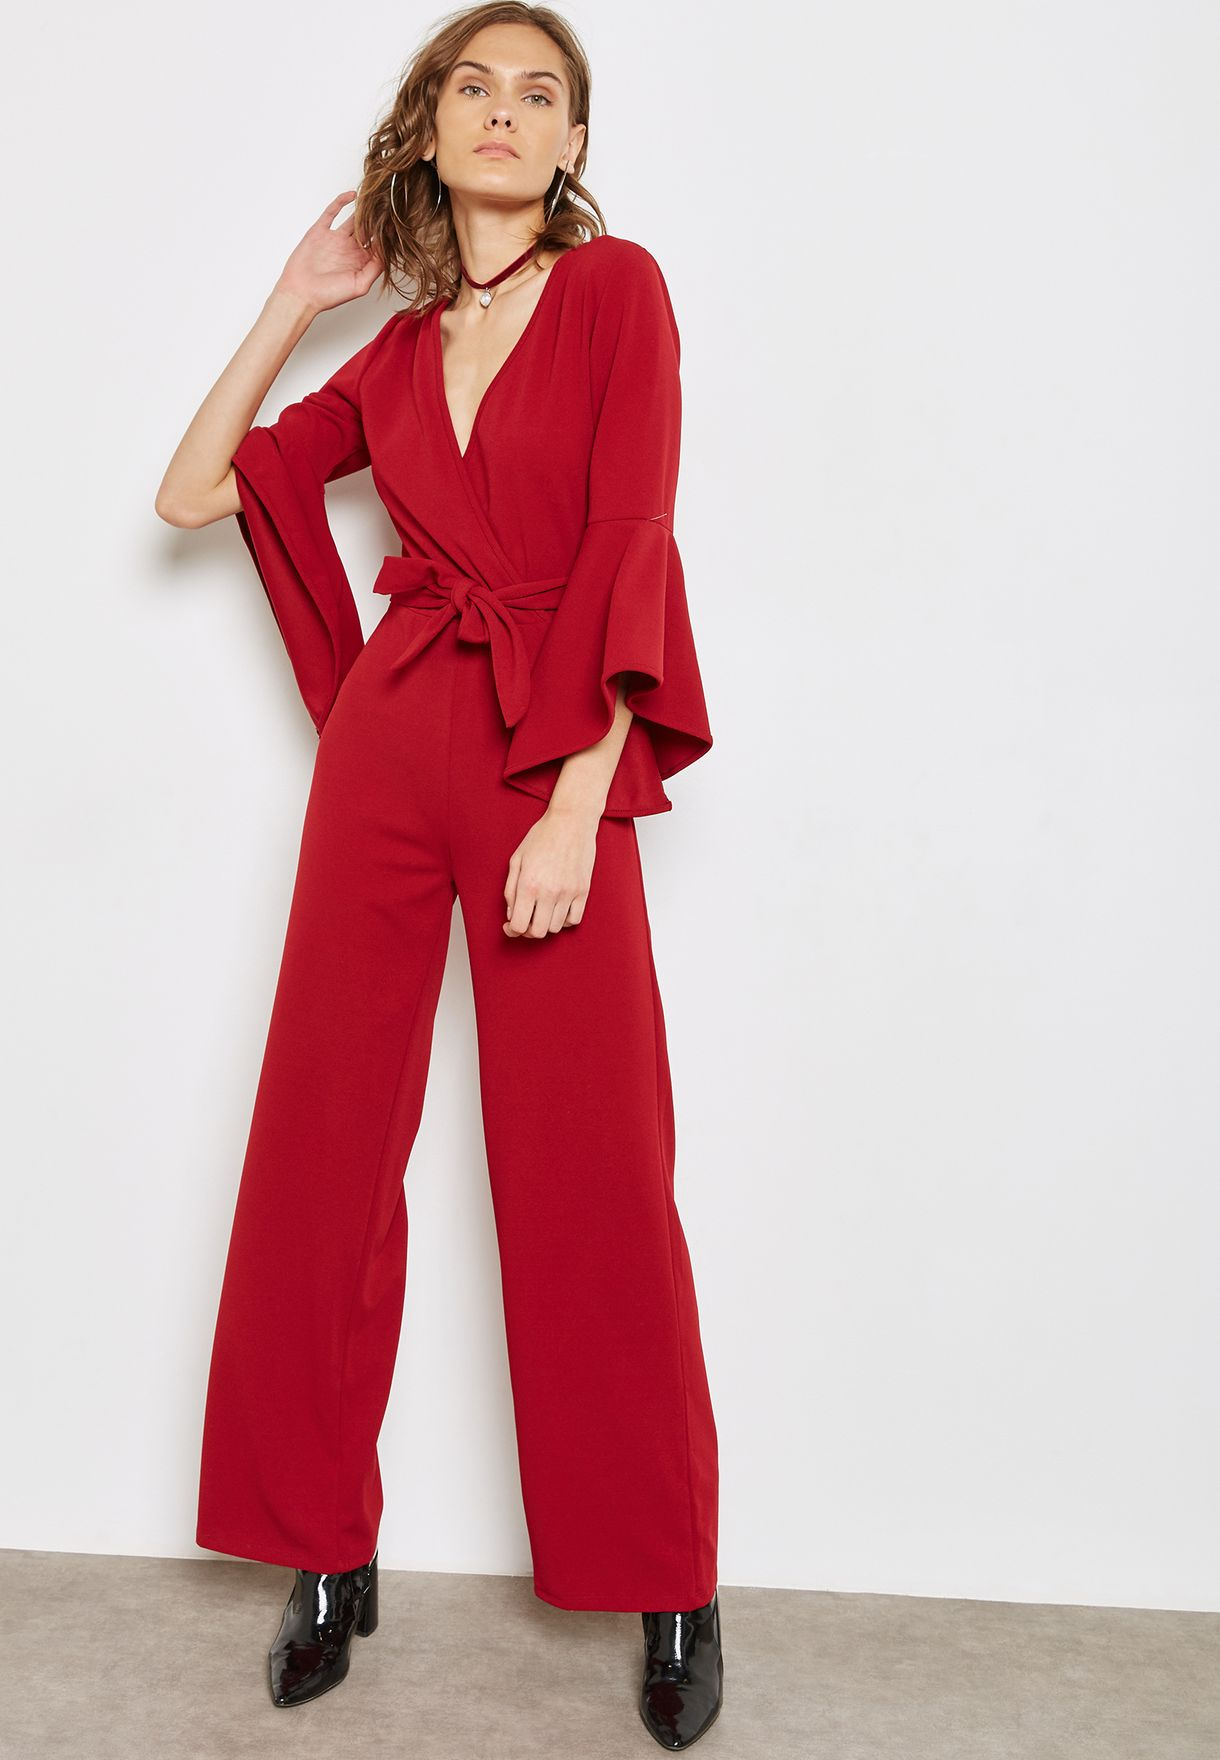 ad7bb1368657f1 Shop Ella red Wrap Front Tie Ruffle Sleeve Jumpsuit RUFFLE SLEEVE ...